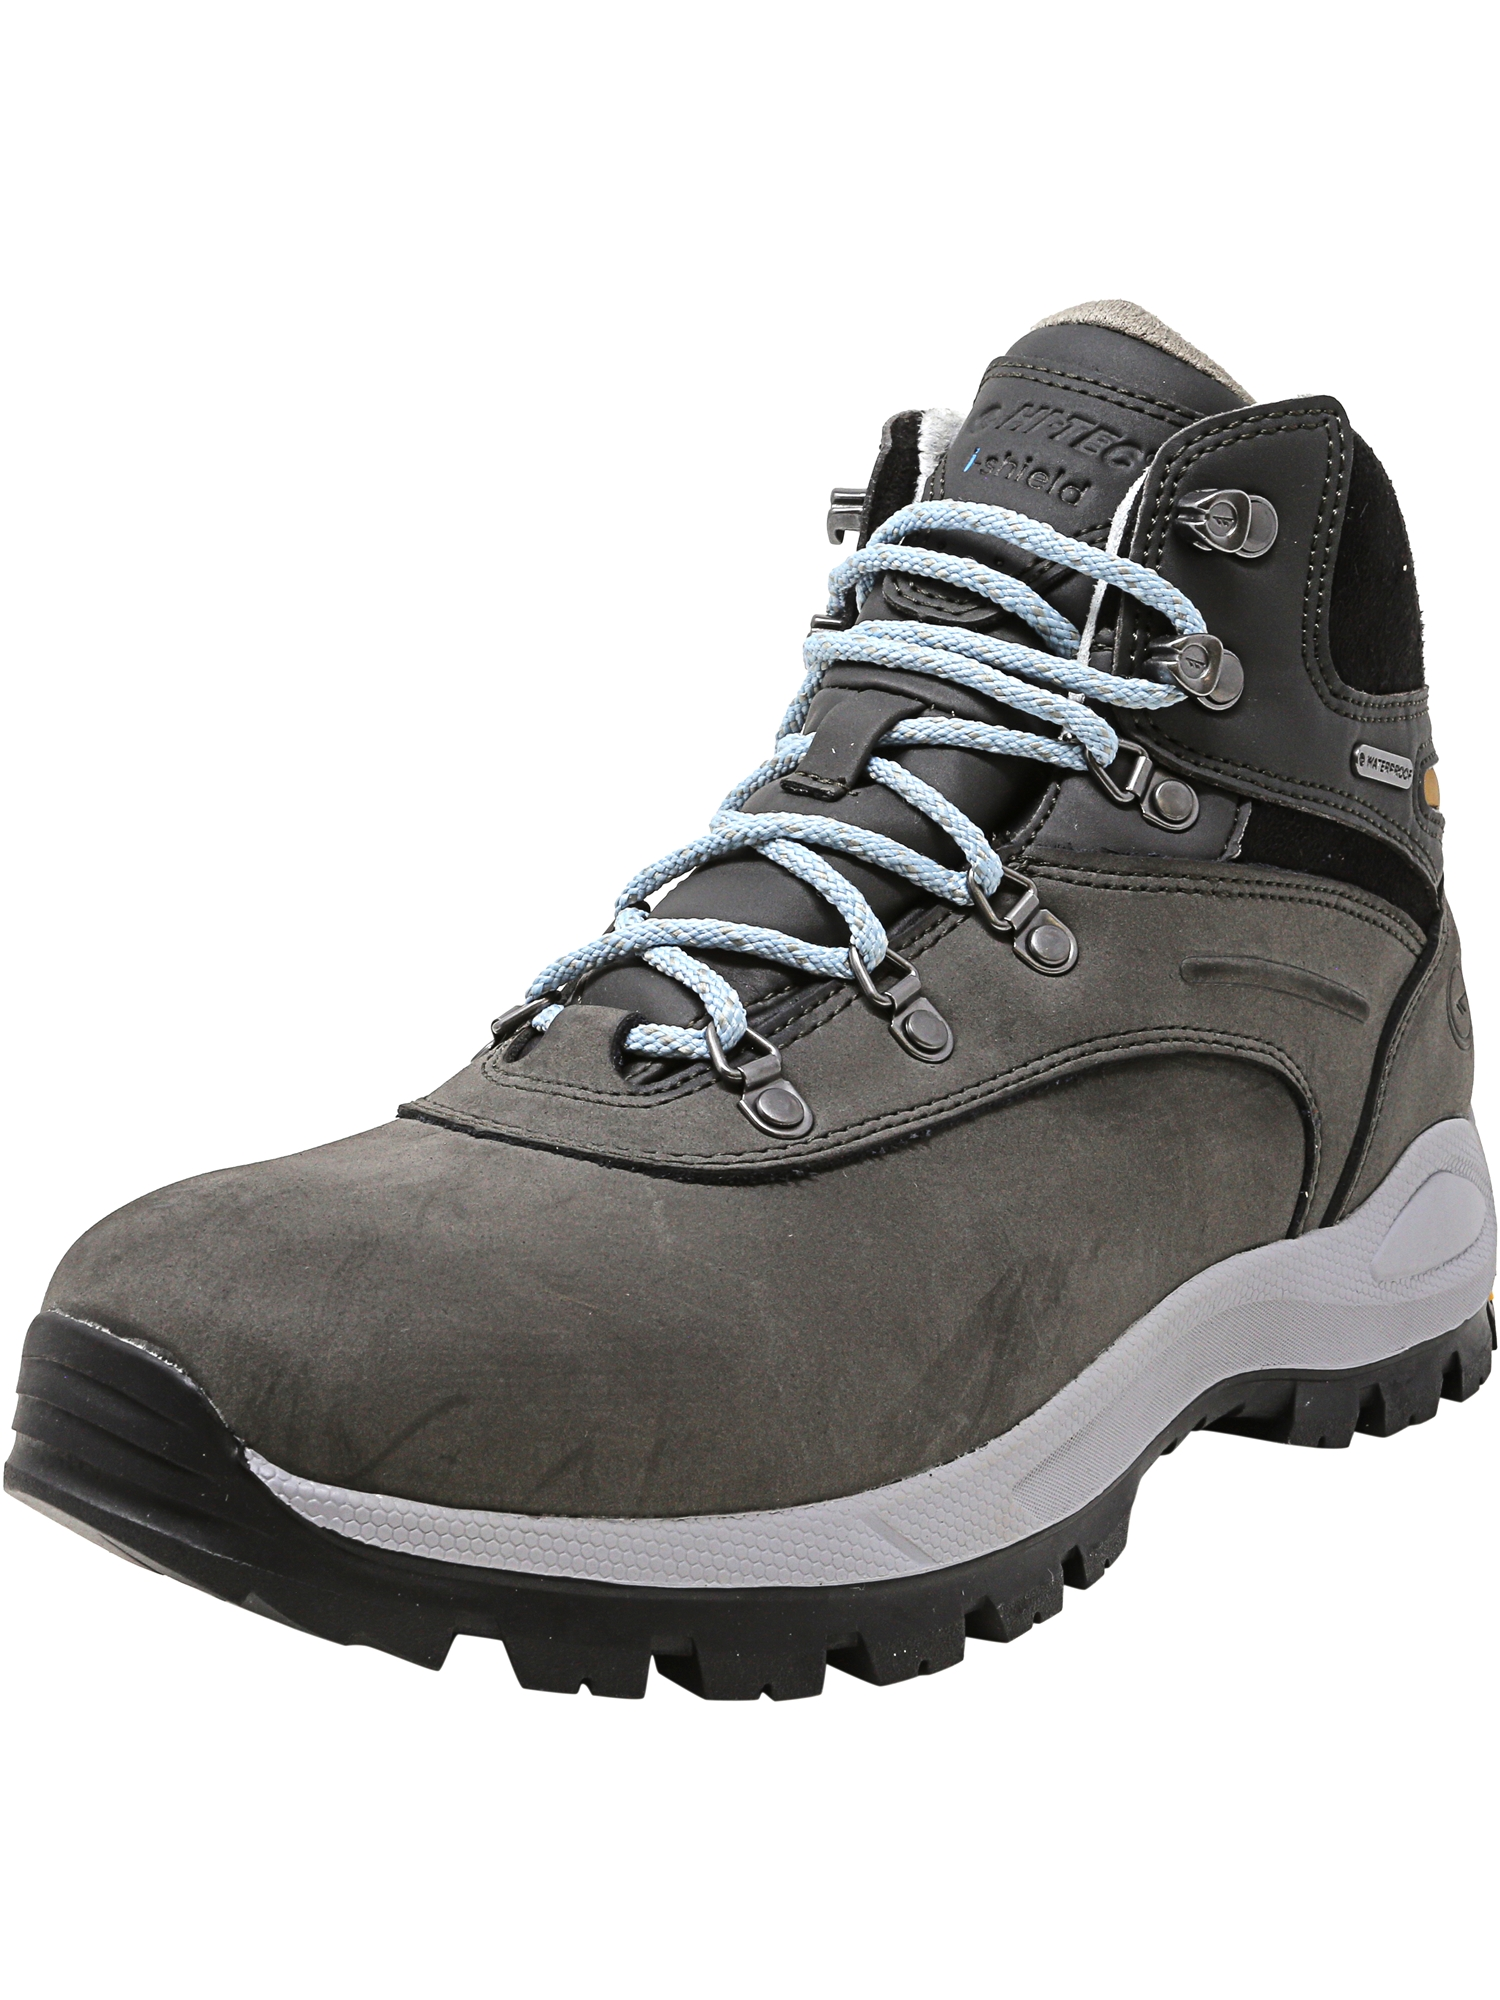 Hi-Tec Women's Altitude Alpyna I Waterproof Charcoal   Forget Me Not High-Top Leather Hiking Boot 8.5M by Hi-Tec